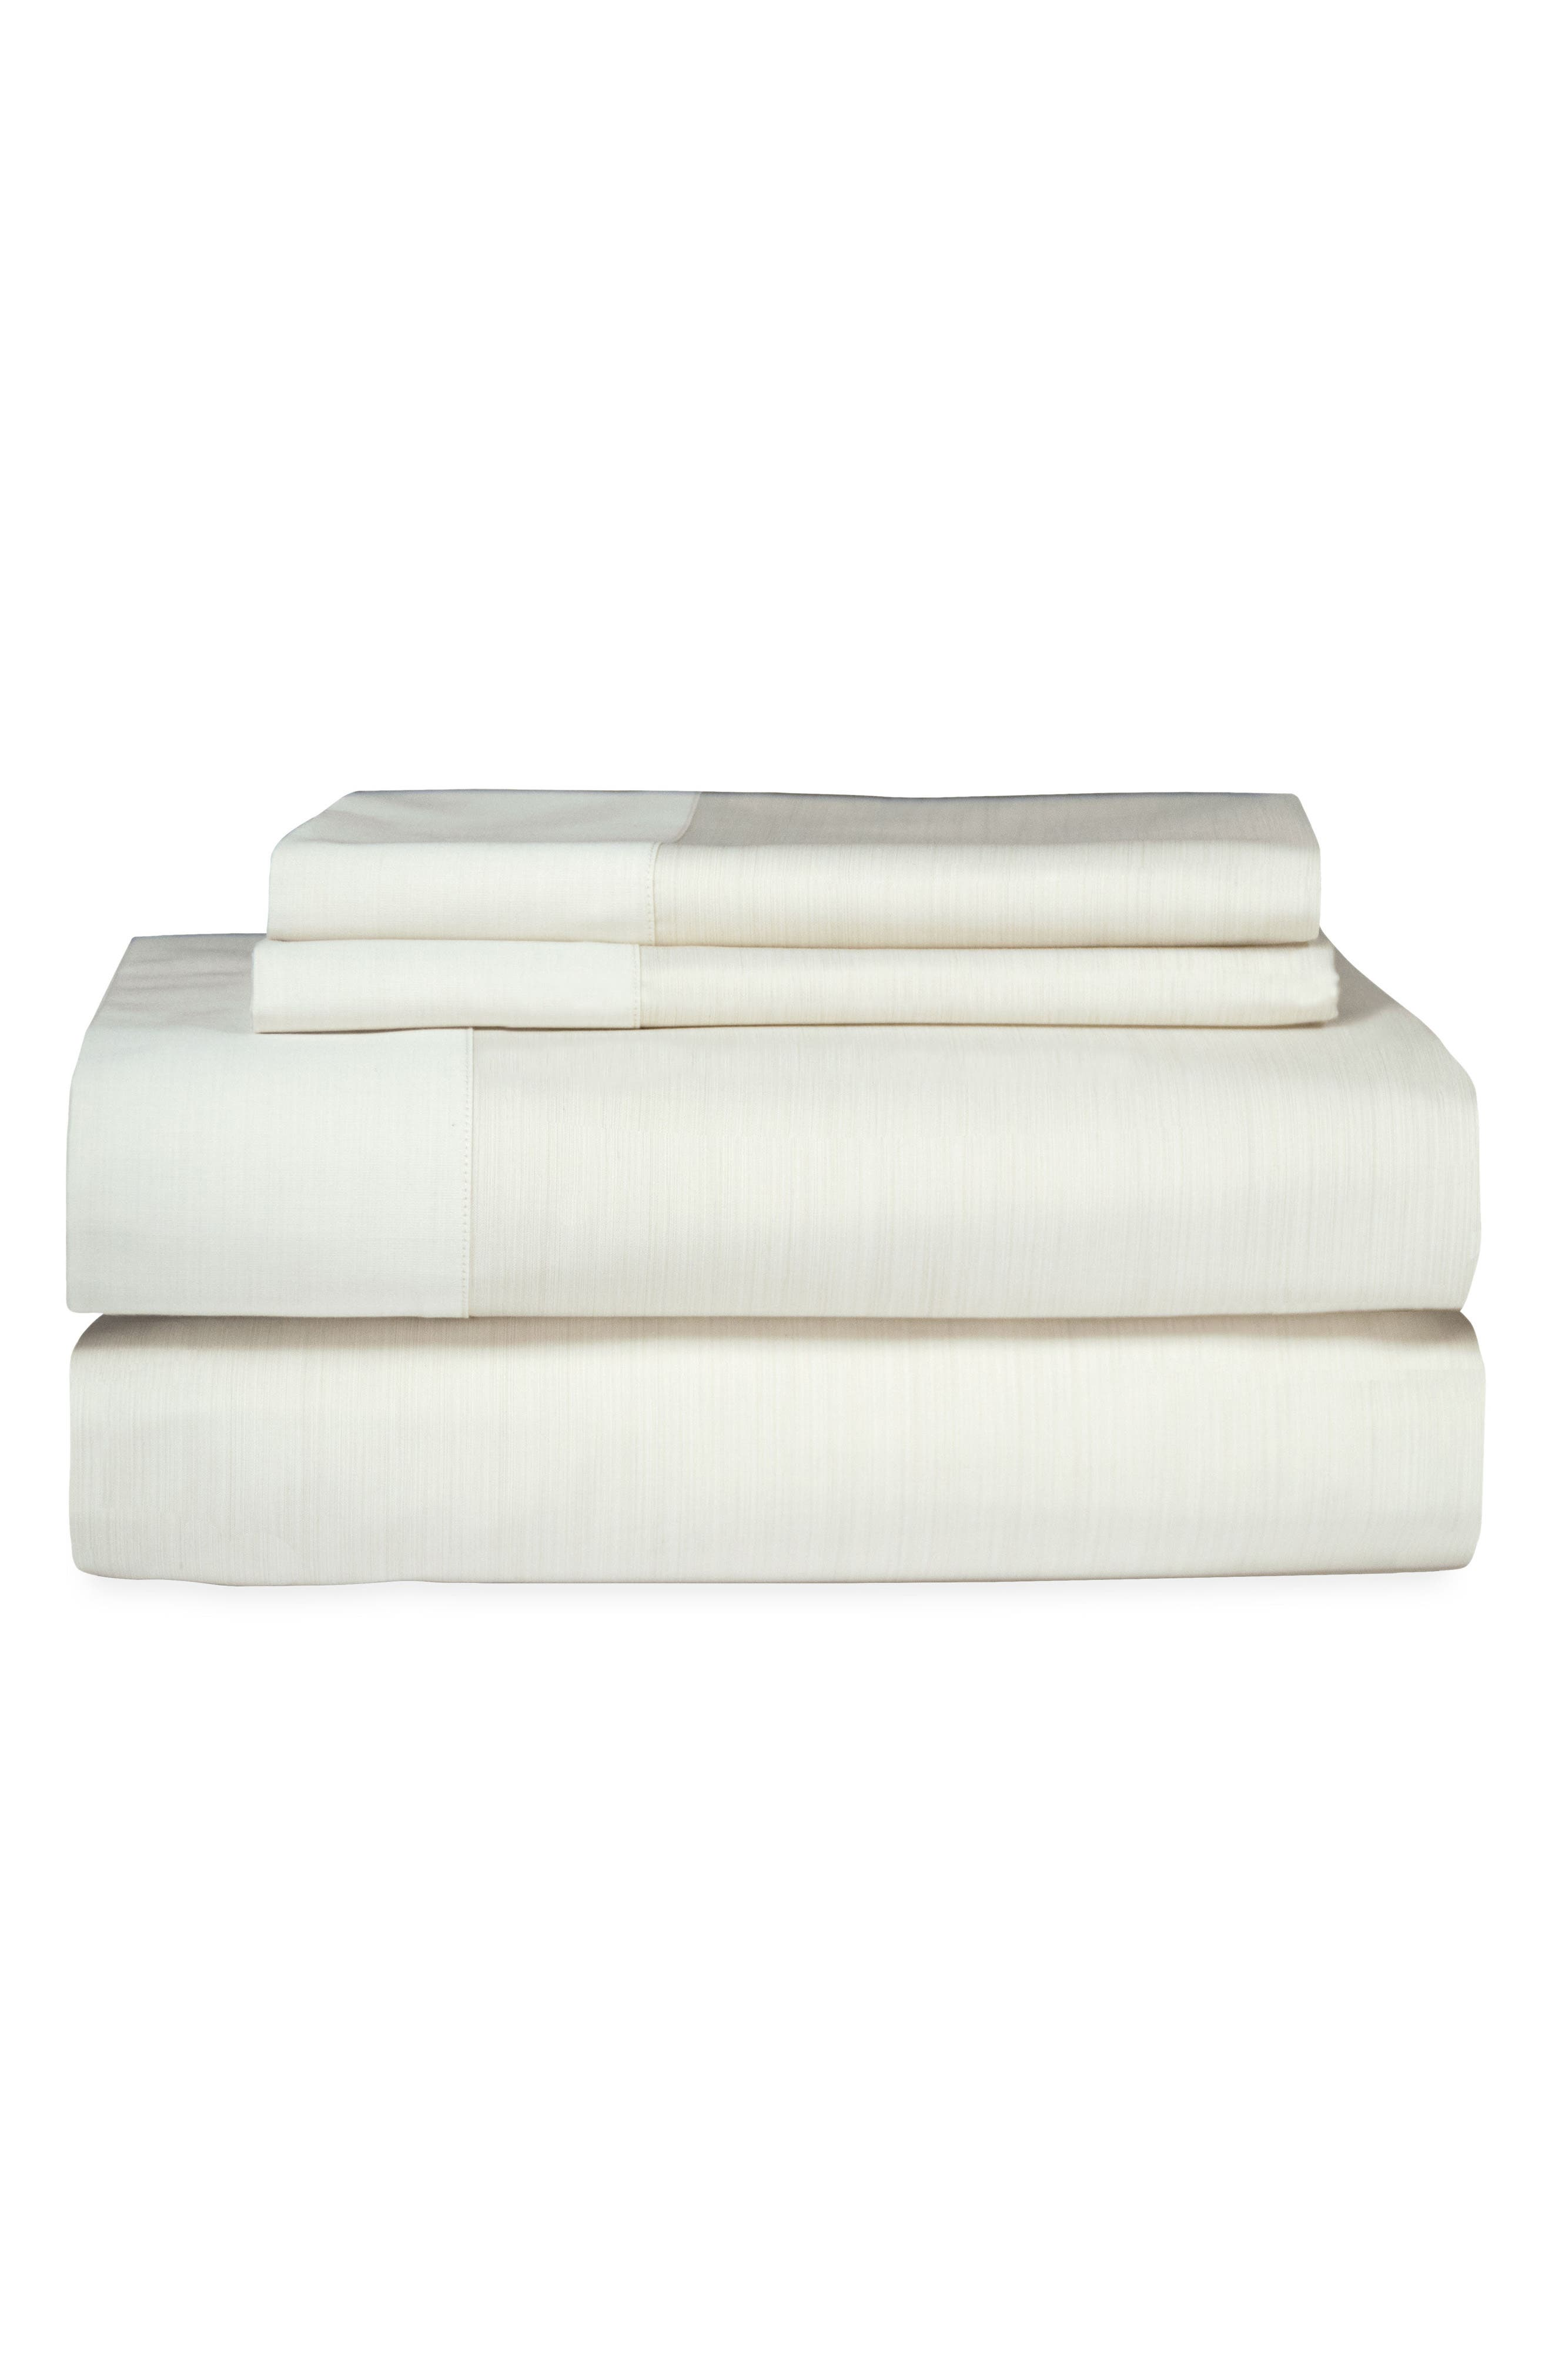 Striated Band 400 Thread Count Fitted Sheet,                         Main,                         color, Ivory